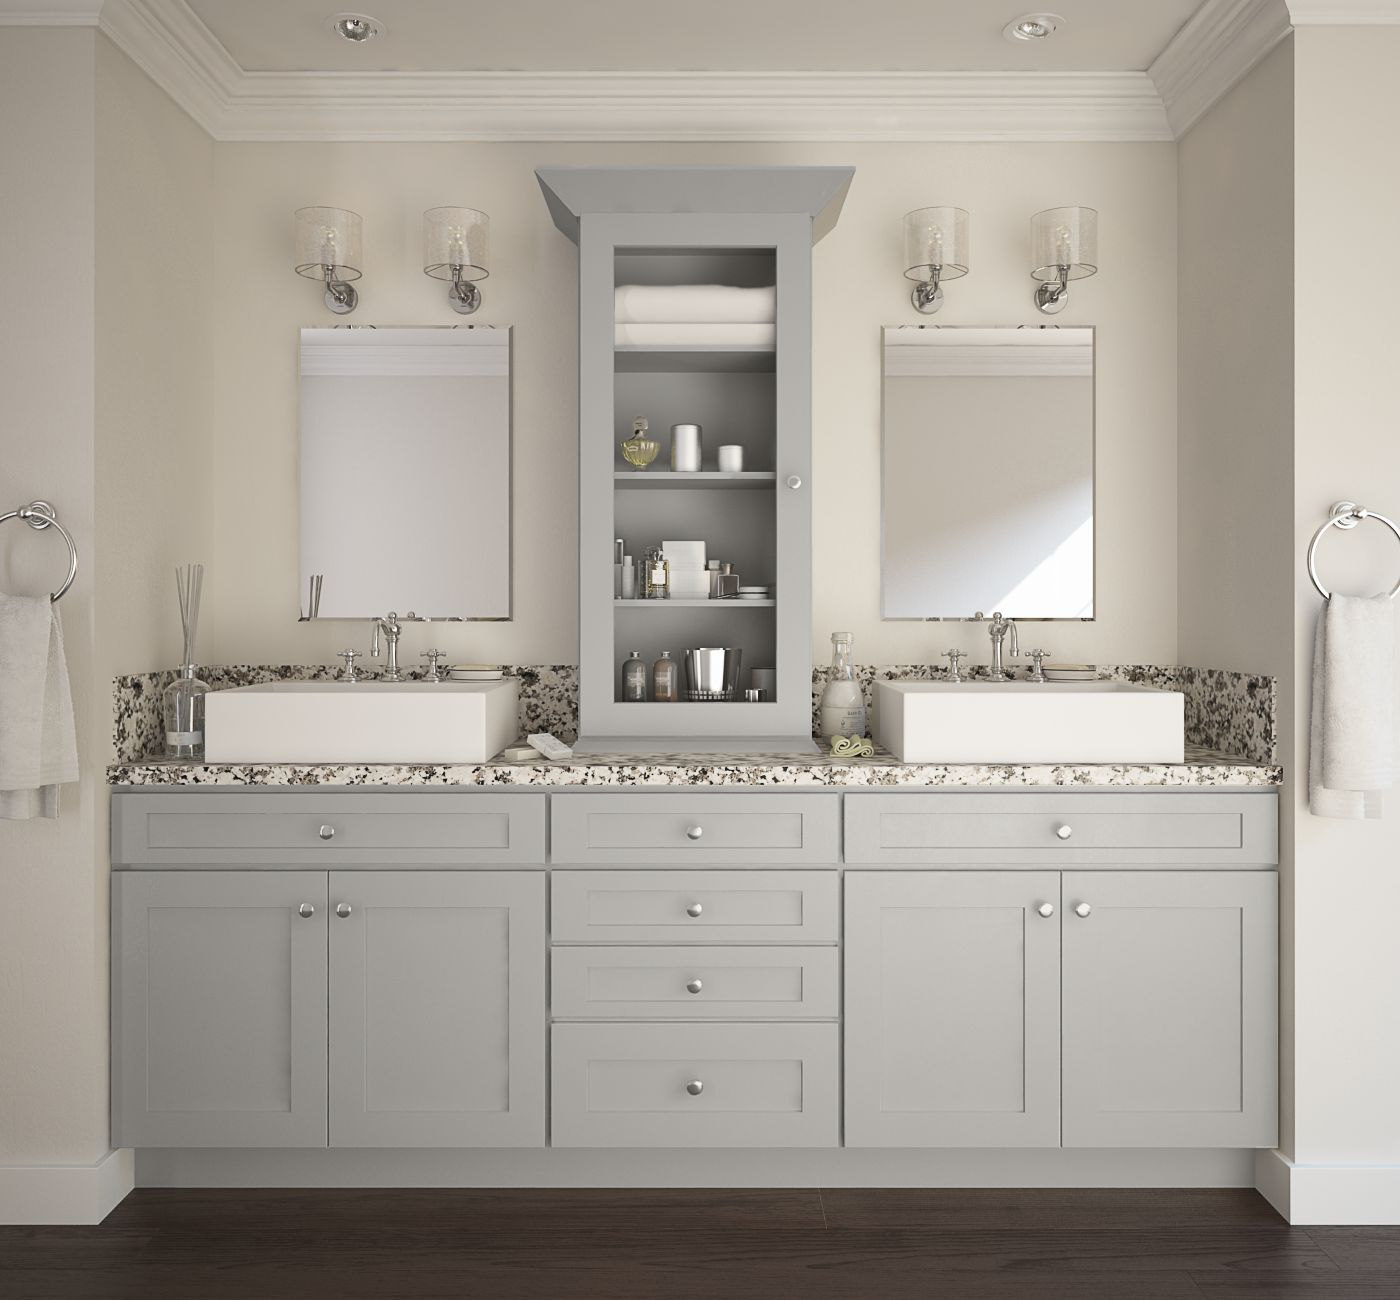 Bathroom Cabinets: Society Shaker Dove Gray Pre-Assembled Bathroom Vanities